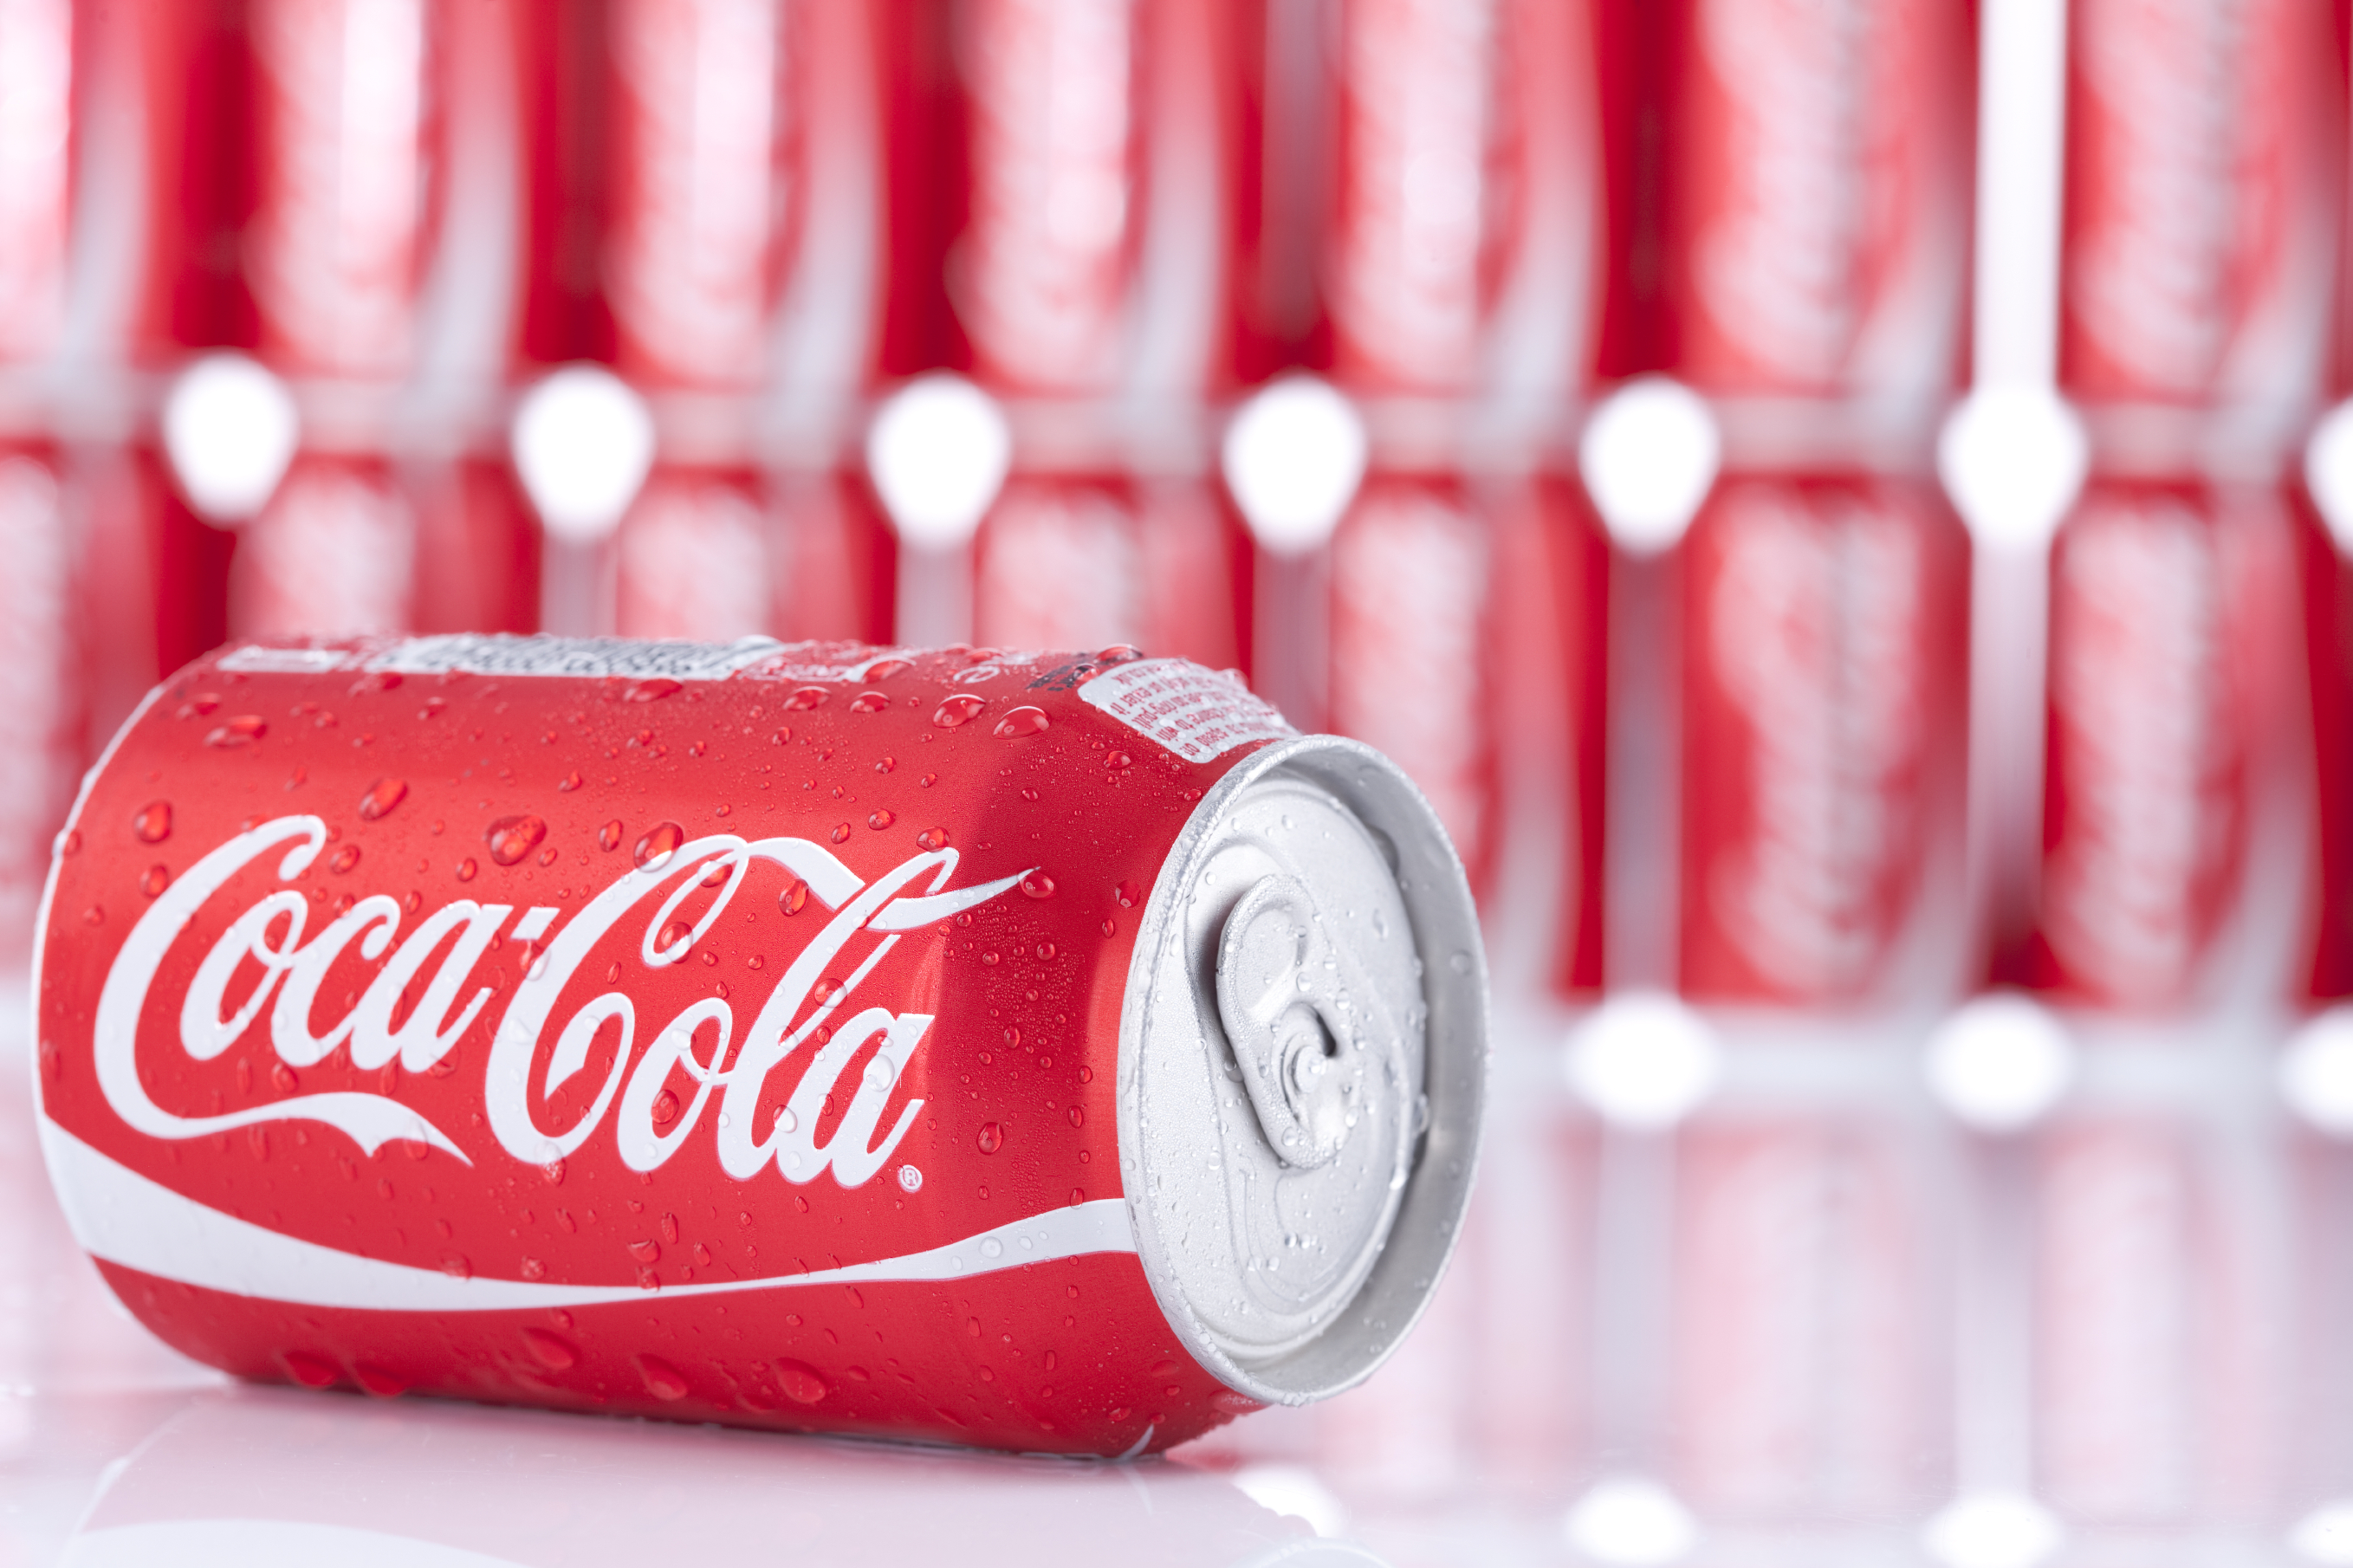 <strong>Coca-Cola = 10.6 grams of sugar per 100ml</strong>